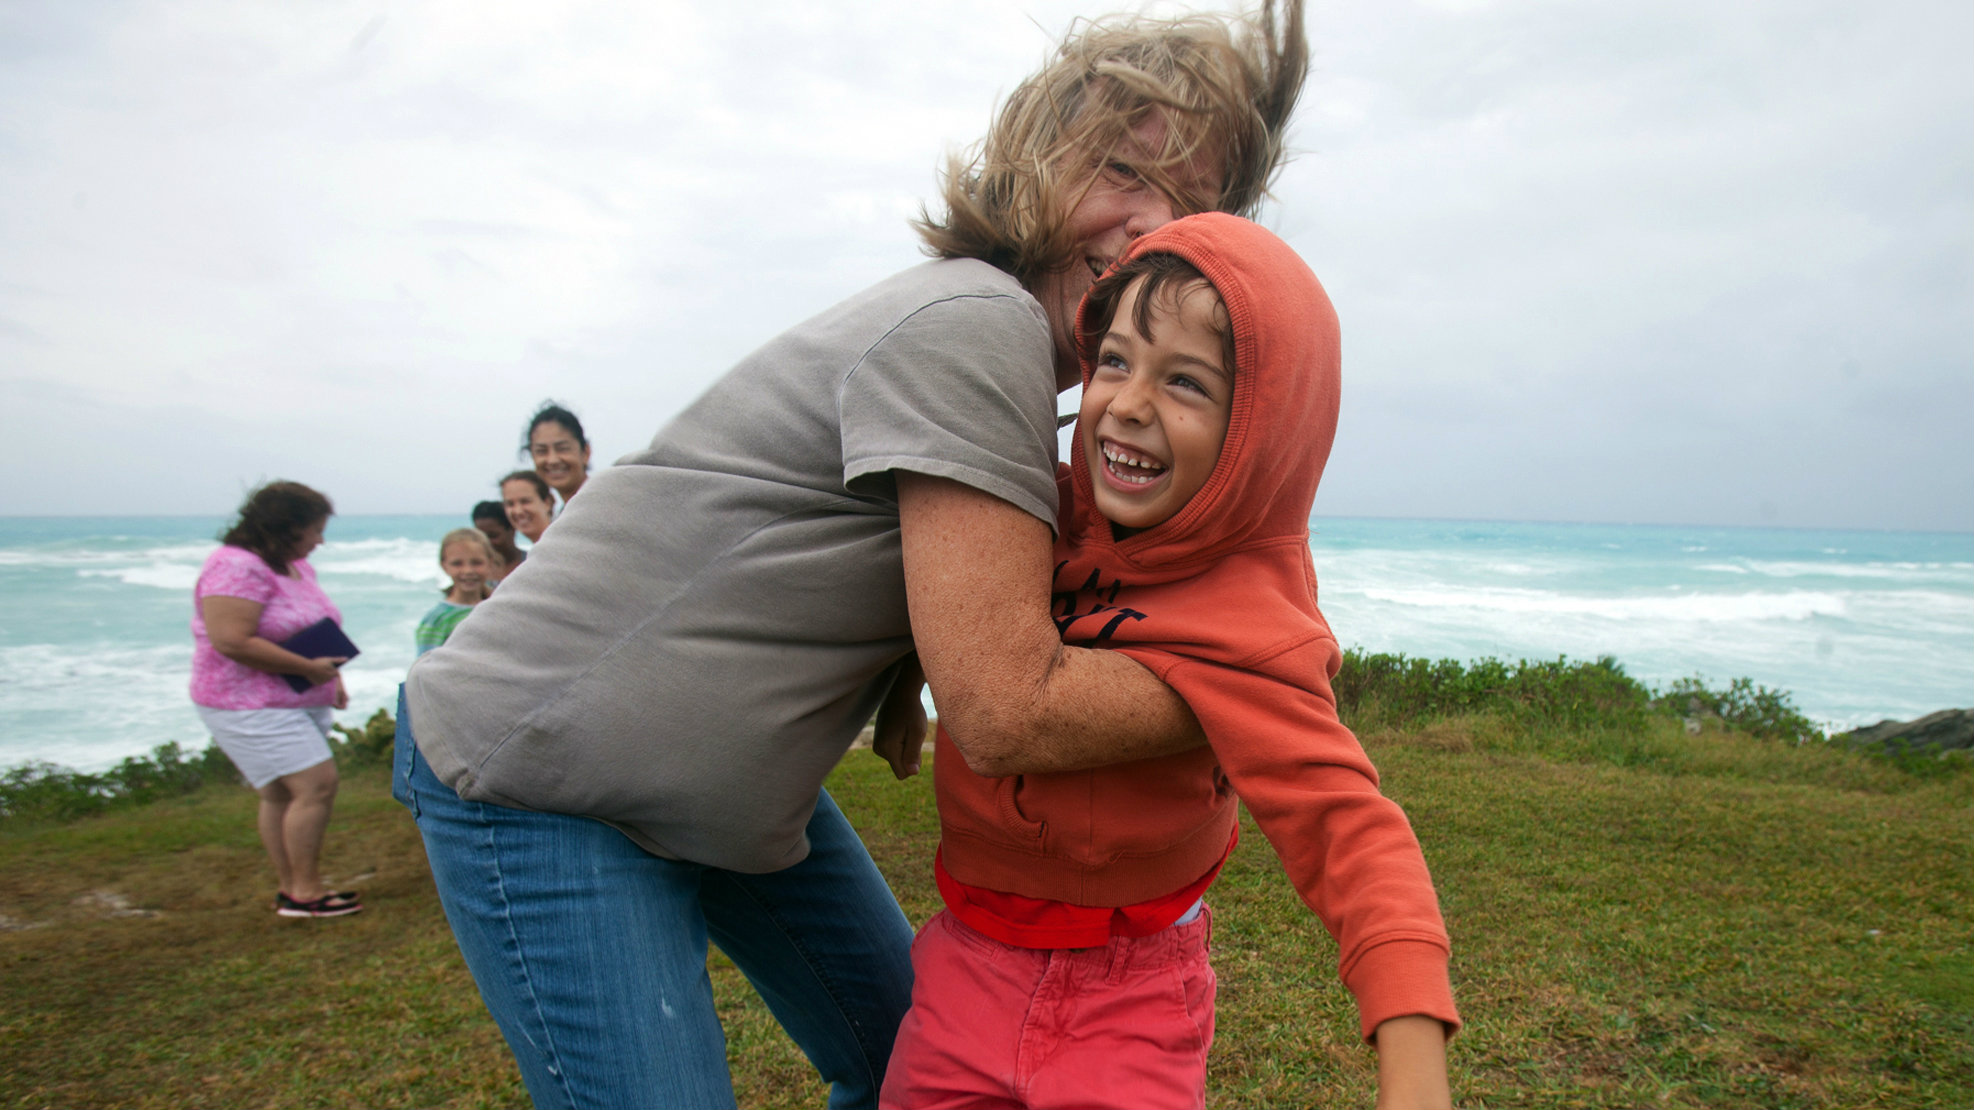 People stand on the island's south shore to feel the winds from approaching Hurricane Gonzalo, in Astwood Park, October 17, 2014. Hurricane Gonzalo barrelled toward Bermuda on Friday with damaging winds and a dangerous surge of water as one of the strongest storms to threaten the Atlantic islands, forecasters said. REUTERS/Nicola Muirhead (BERMUDA - Tags: ENVIRONMENT DISASTER TPX IMAGES OF THE DAY)